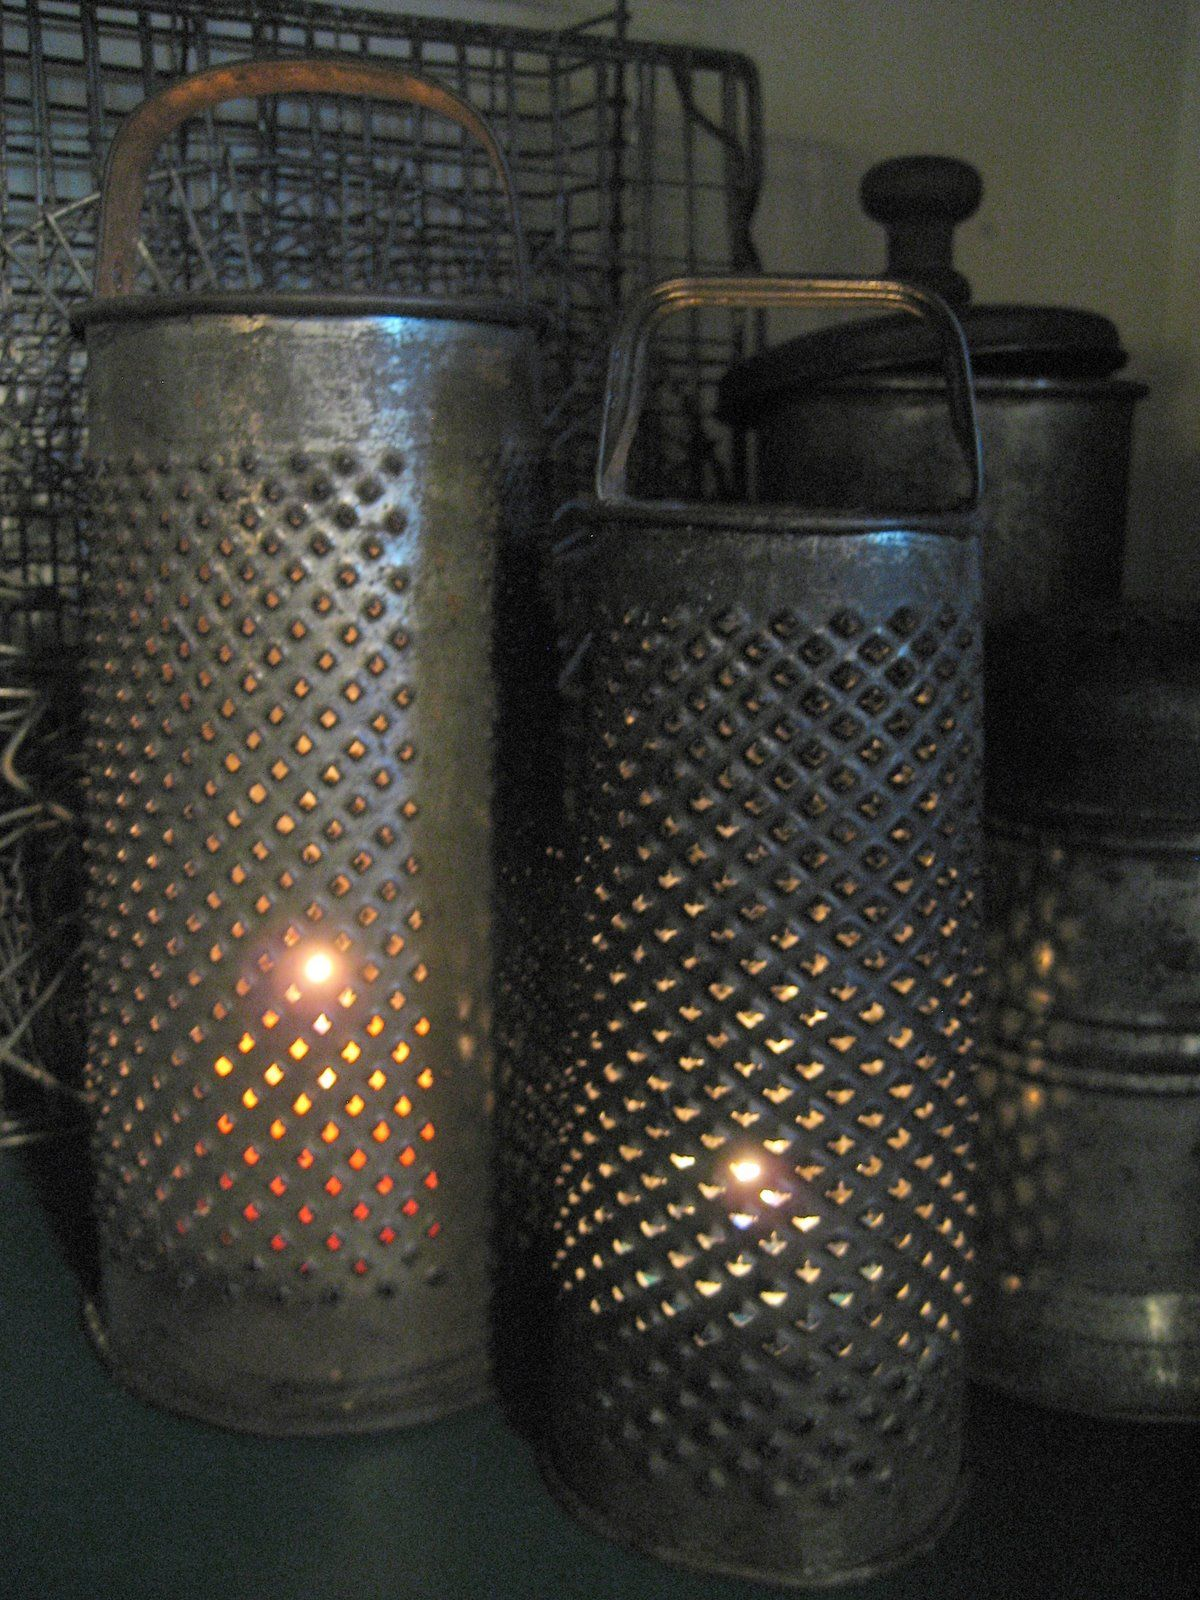 grater candleholders